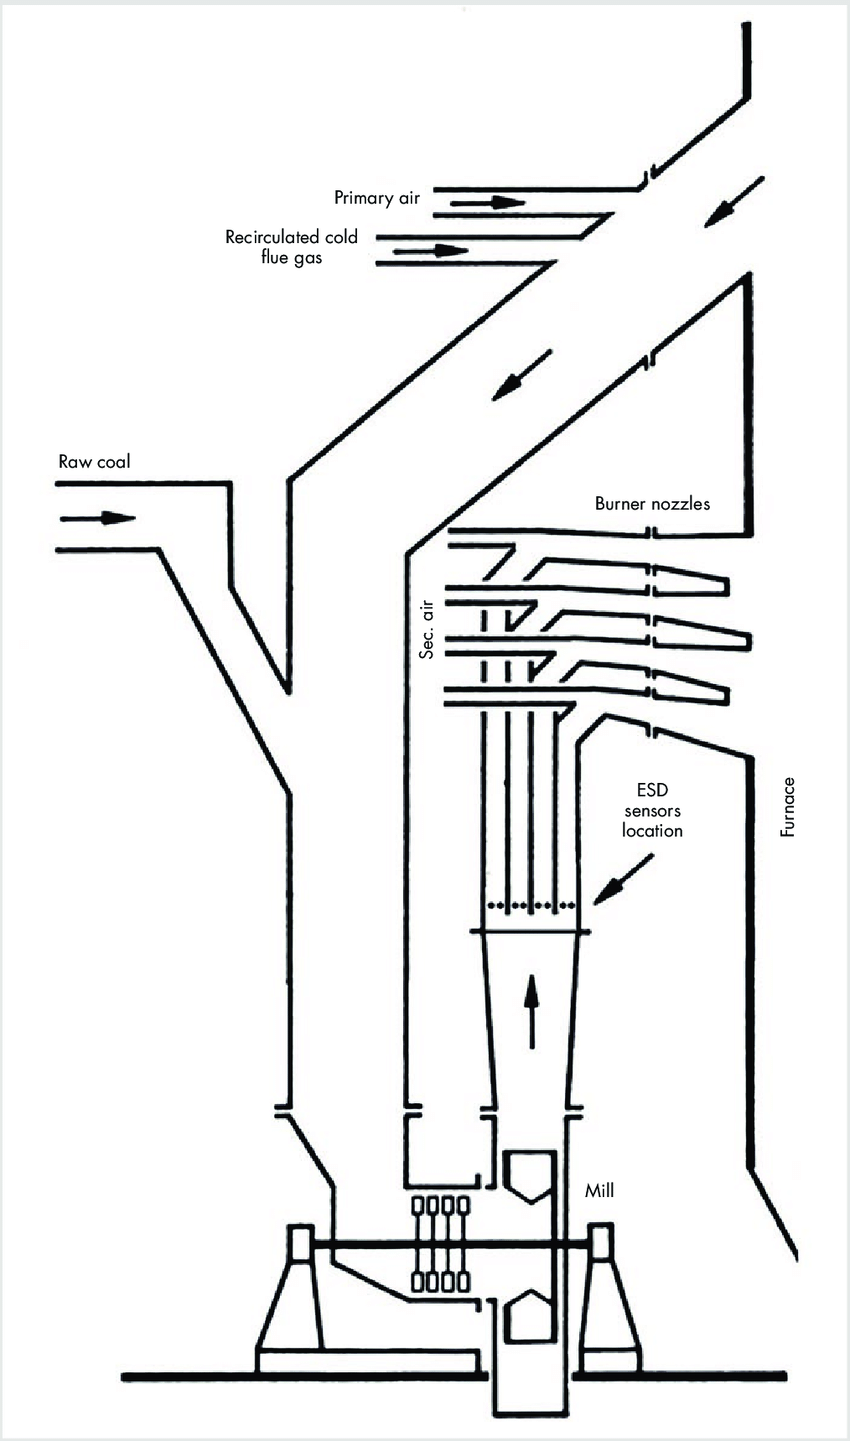 medium resolution of schematic arrangement of fan impact mill and burner nozzles with locations of the esd sensors